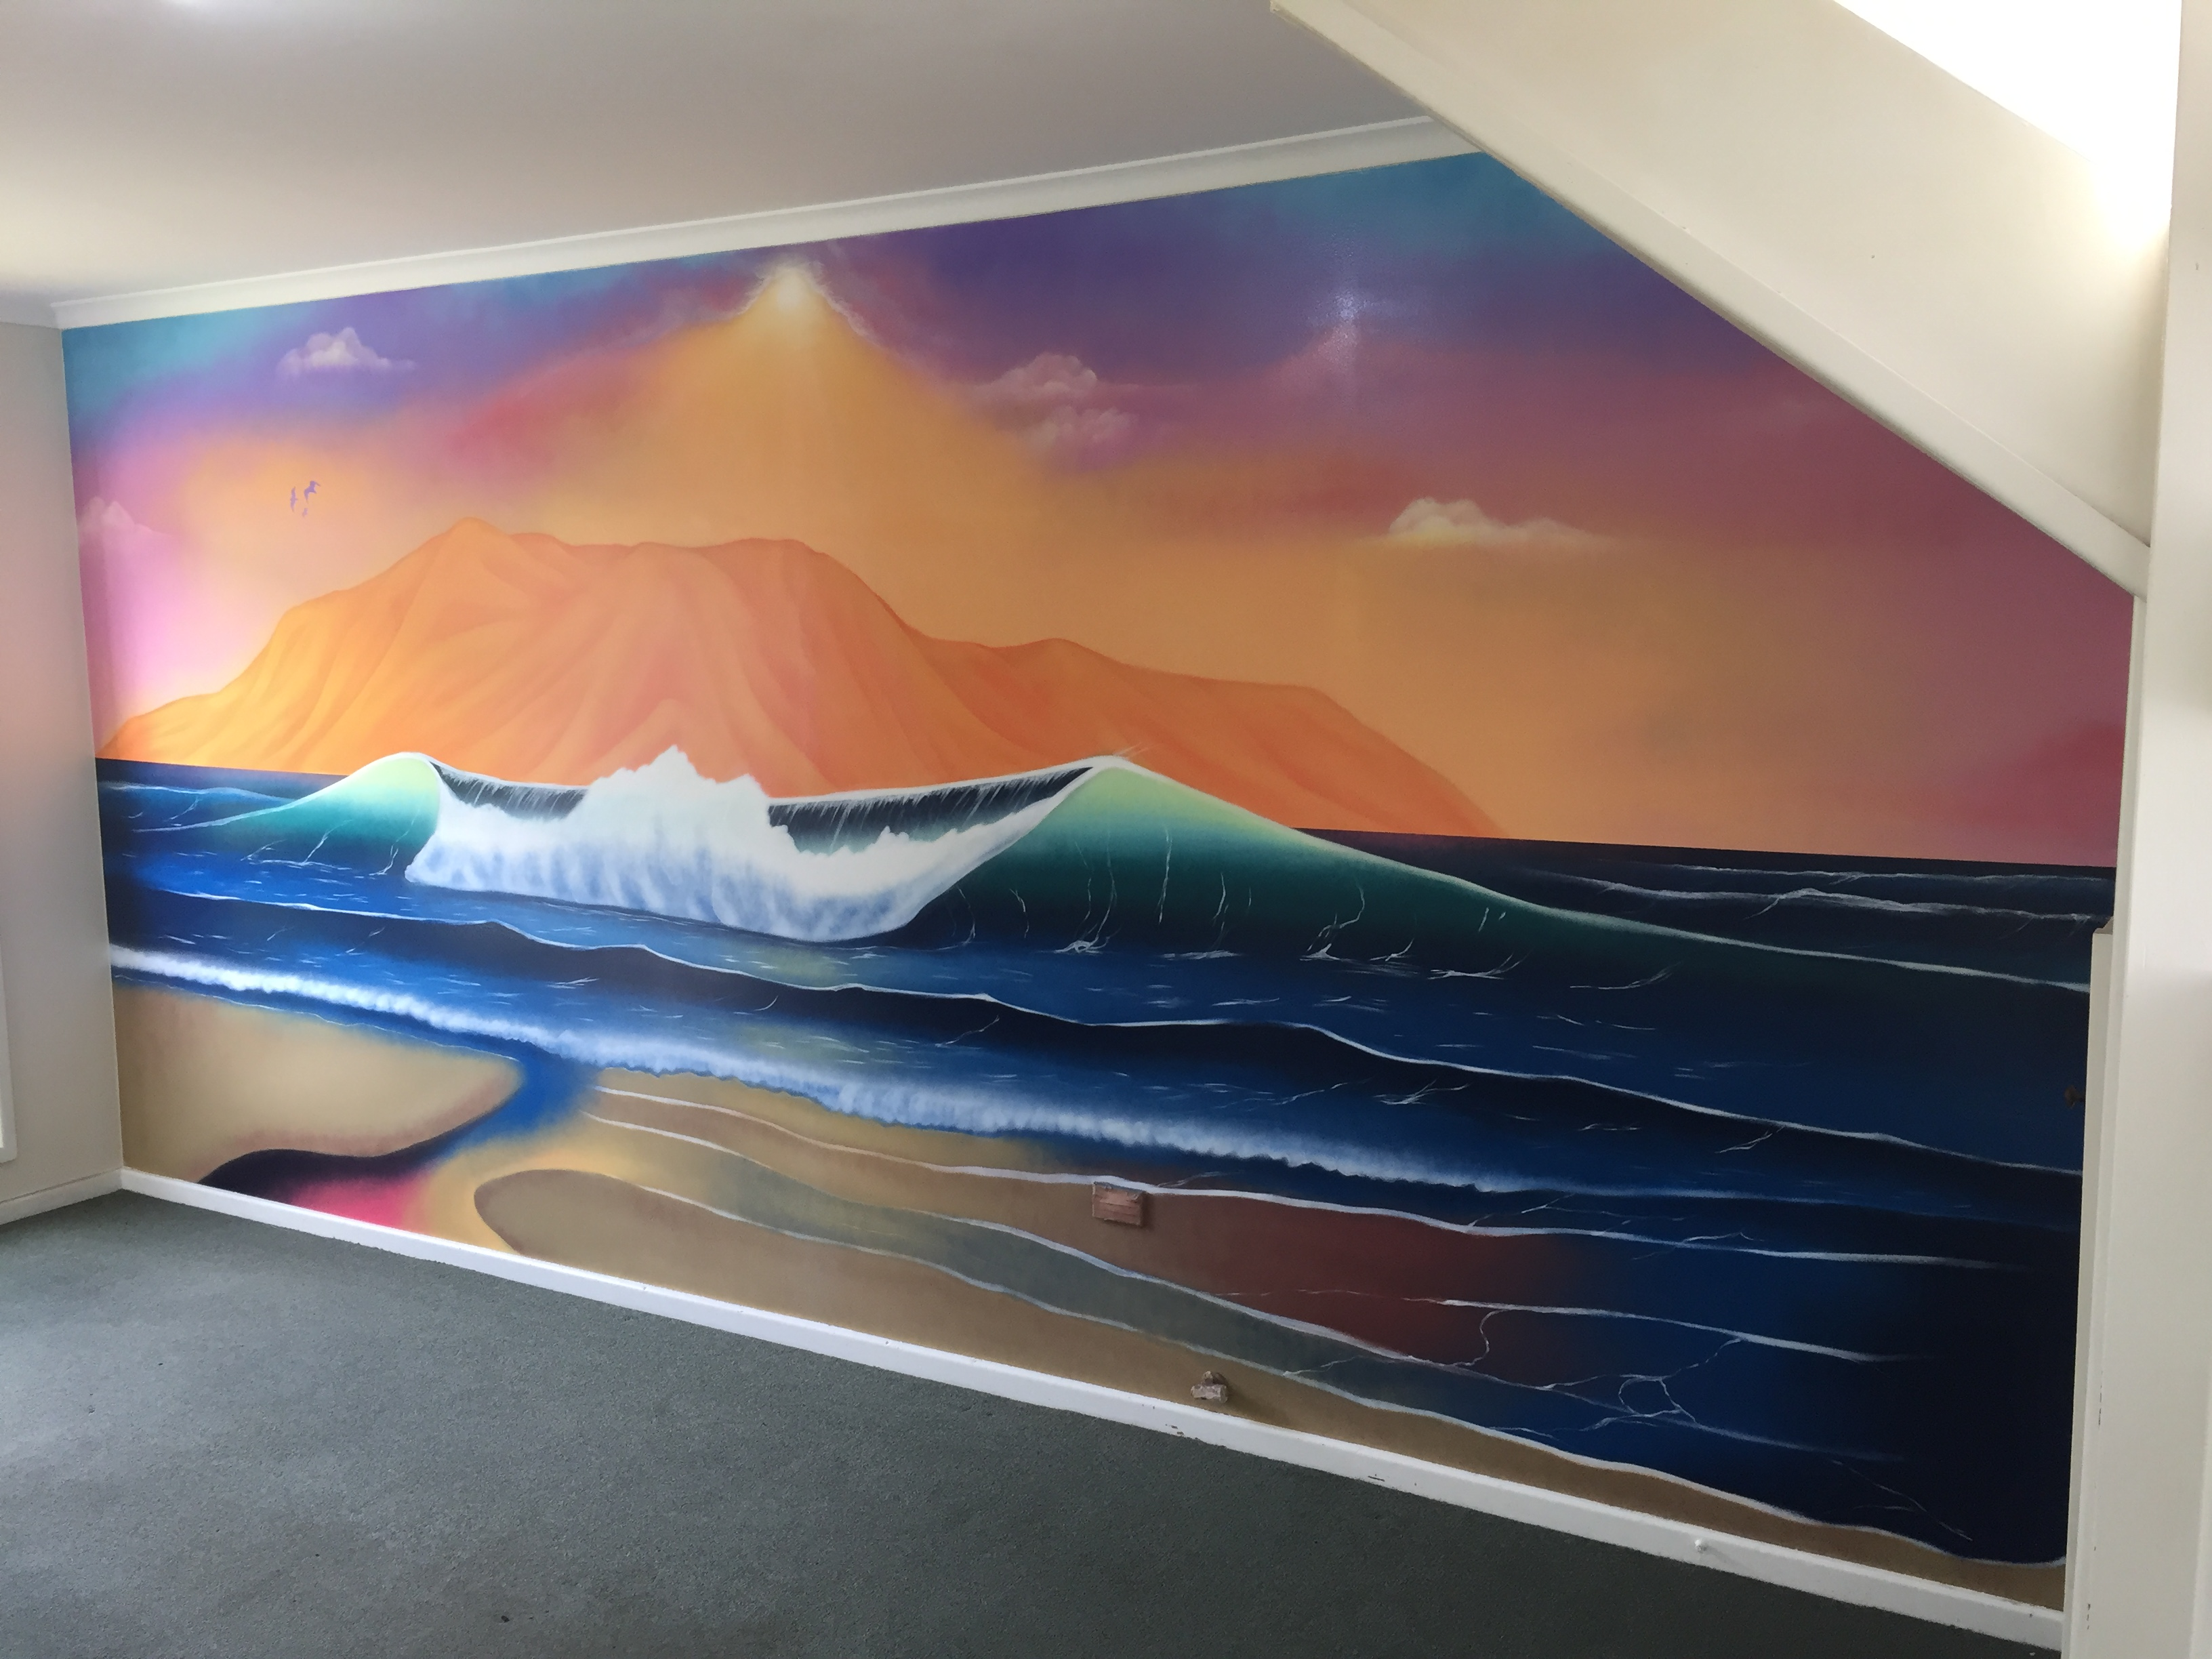 Mural of ocean waves painted in home